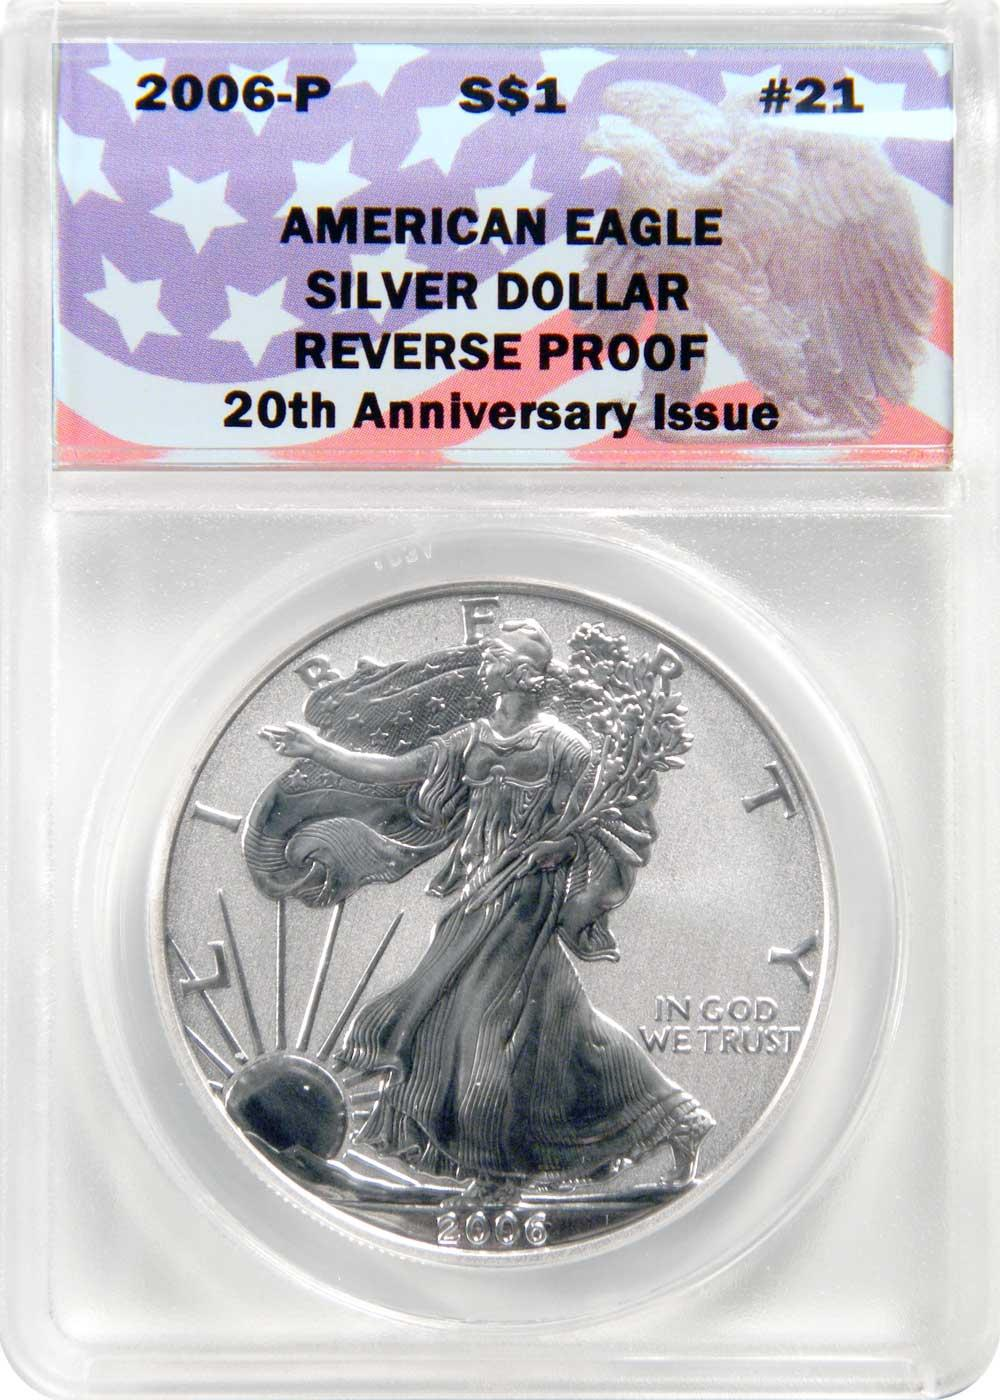 Collectons Keepers 21 2006 P Reverse Proof American